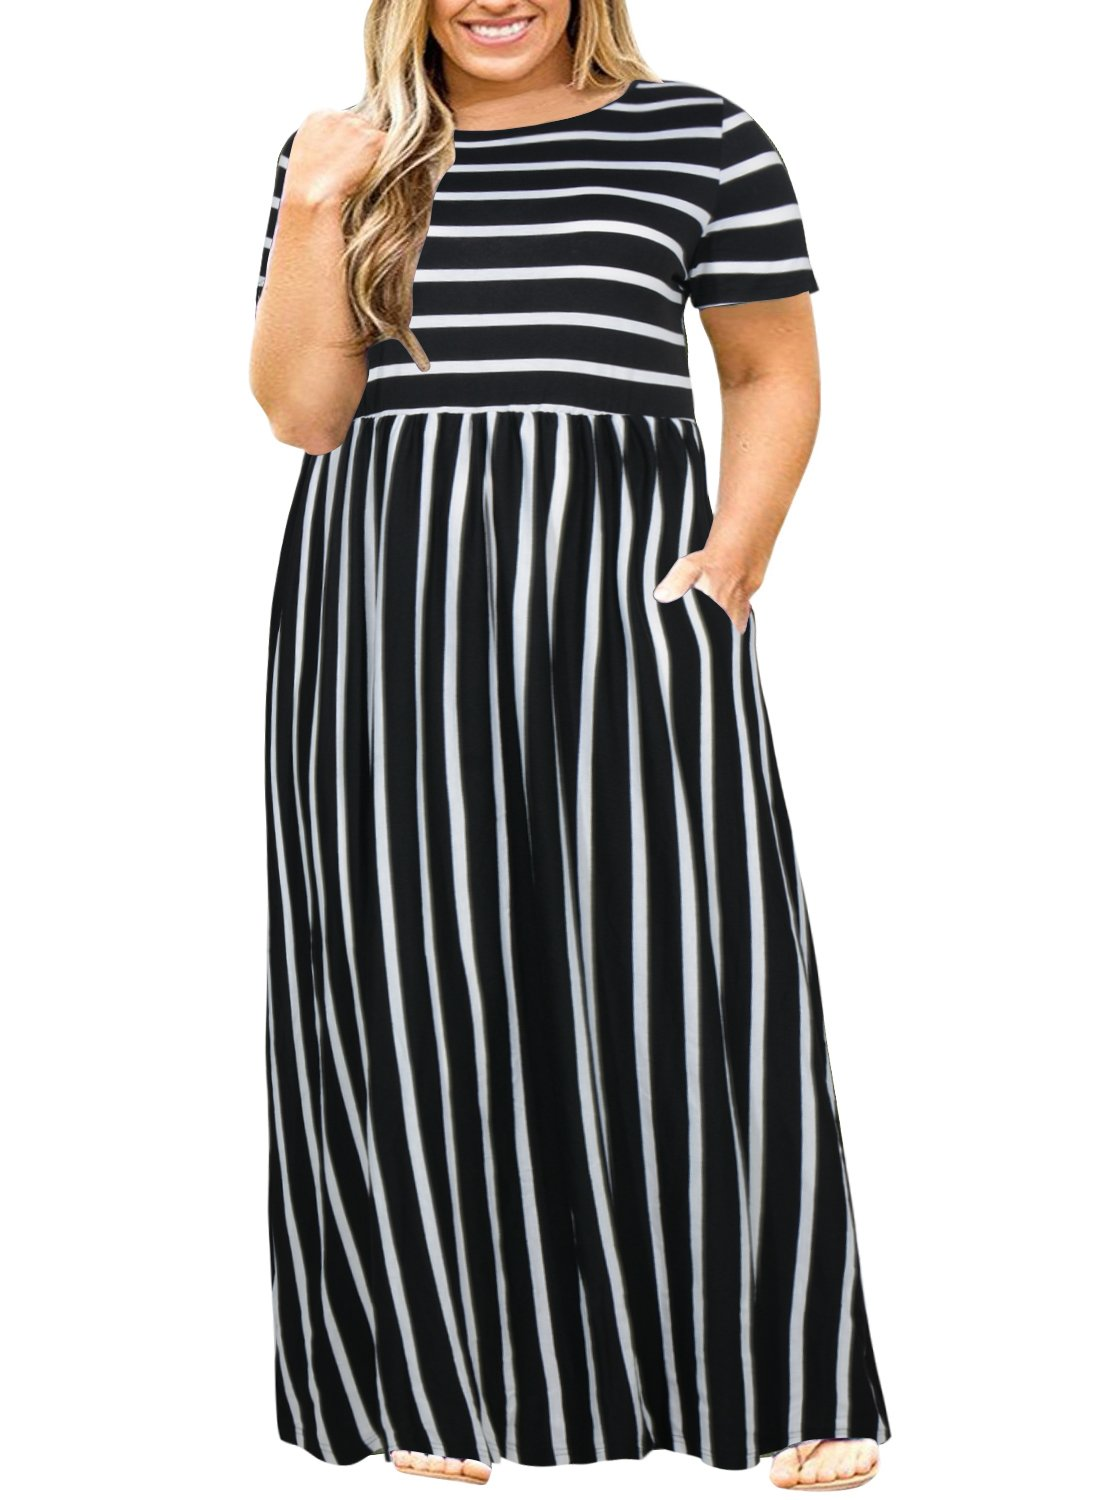 Nemidor Women Short Sleeve Loose Plain Casual Plus Size Long Maxi Dress with Pockets (Black Stripe, 16W)